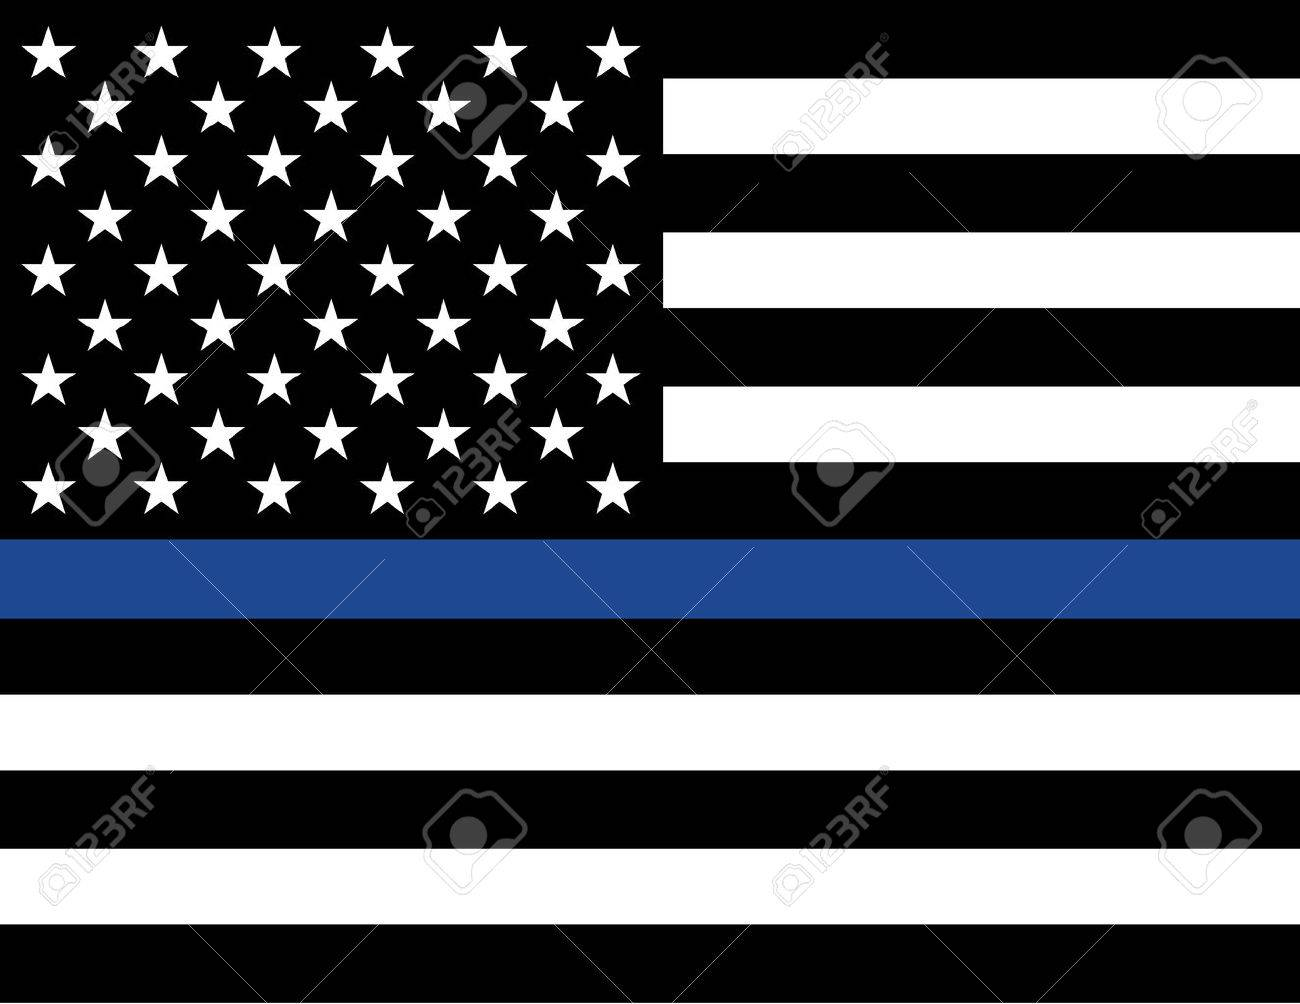 An American flag law enforcement support flag. - 60428503